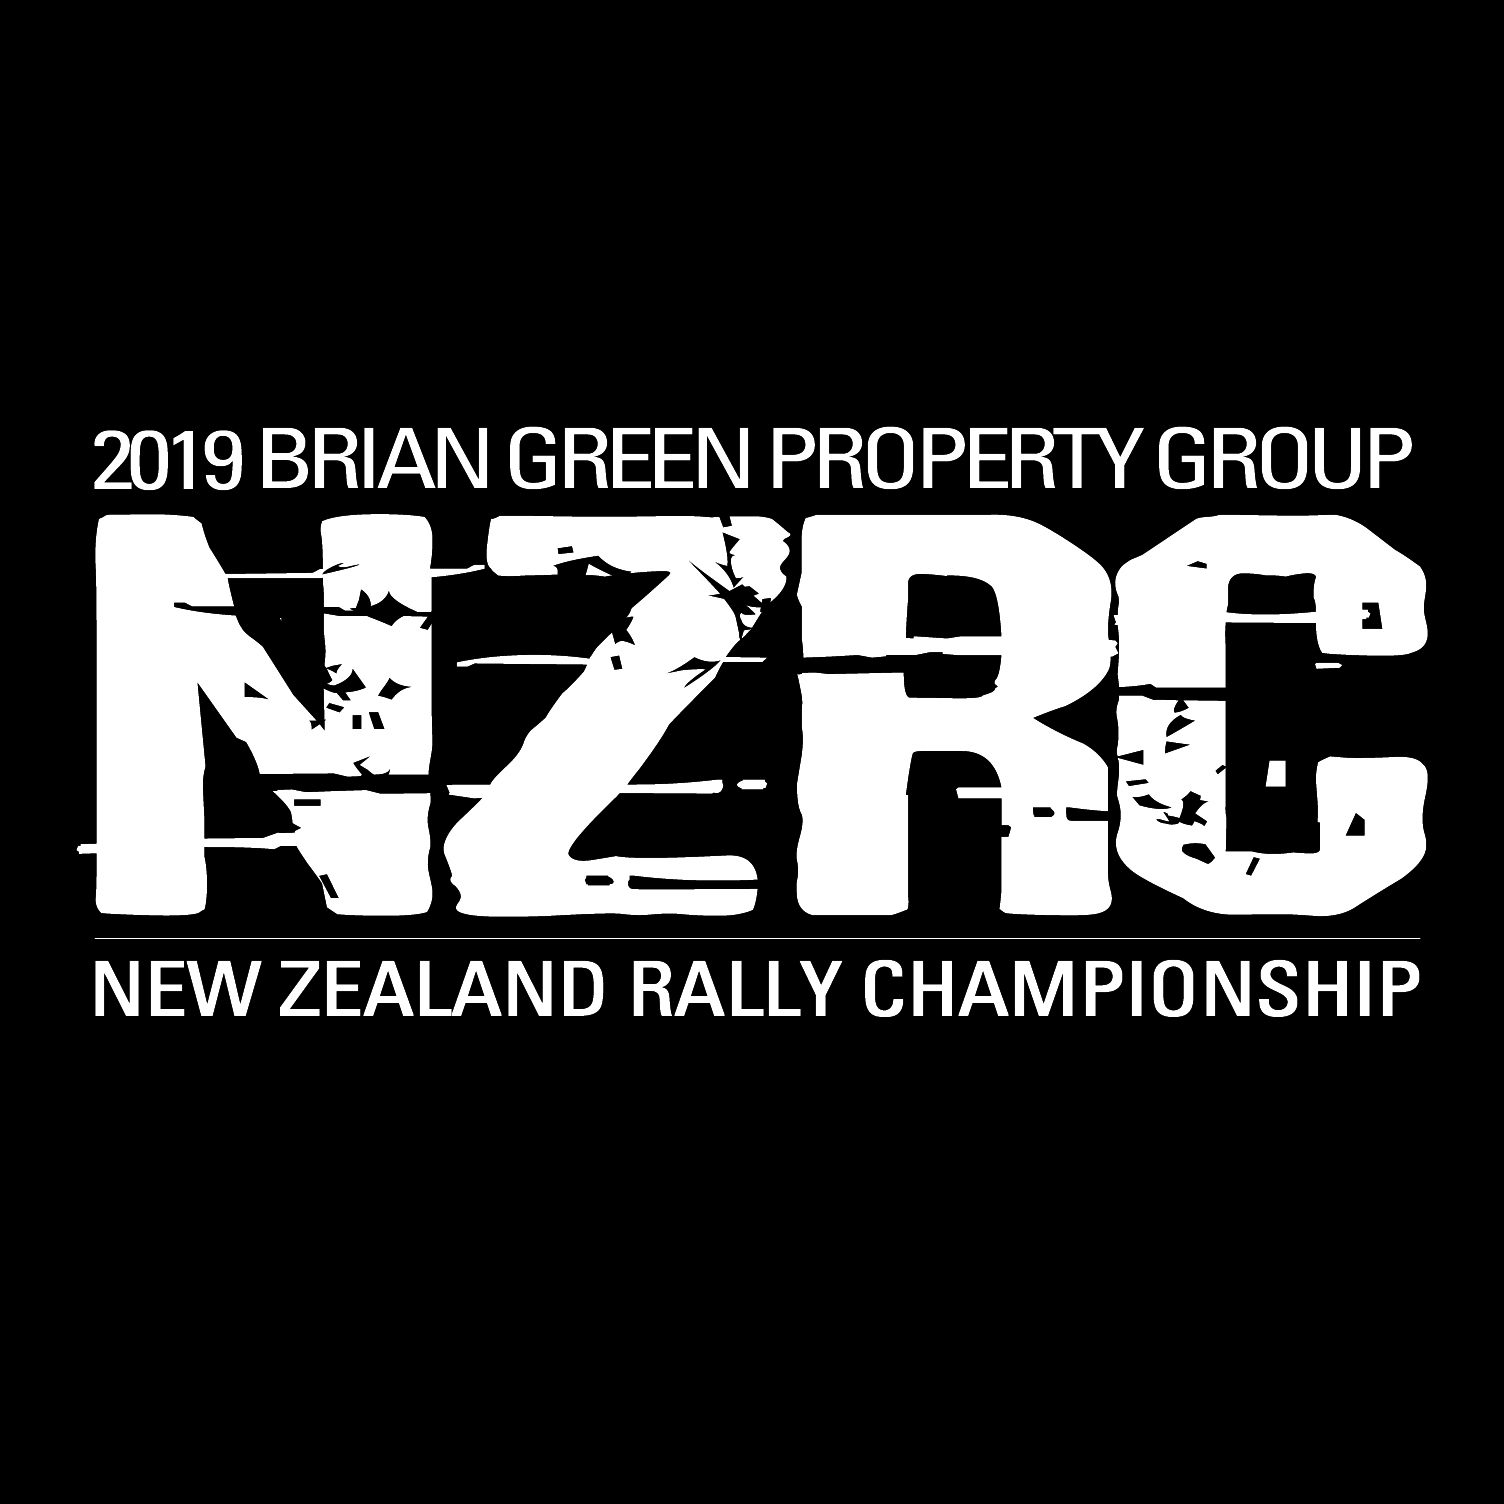 Summerfield wins in treacherous Canterbury Rally | :: Brian Green Property Group New Zealand Rally Championship ::